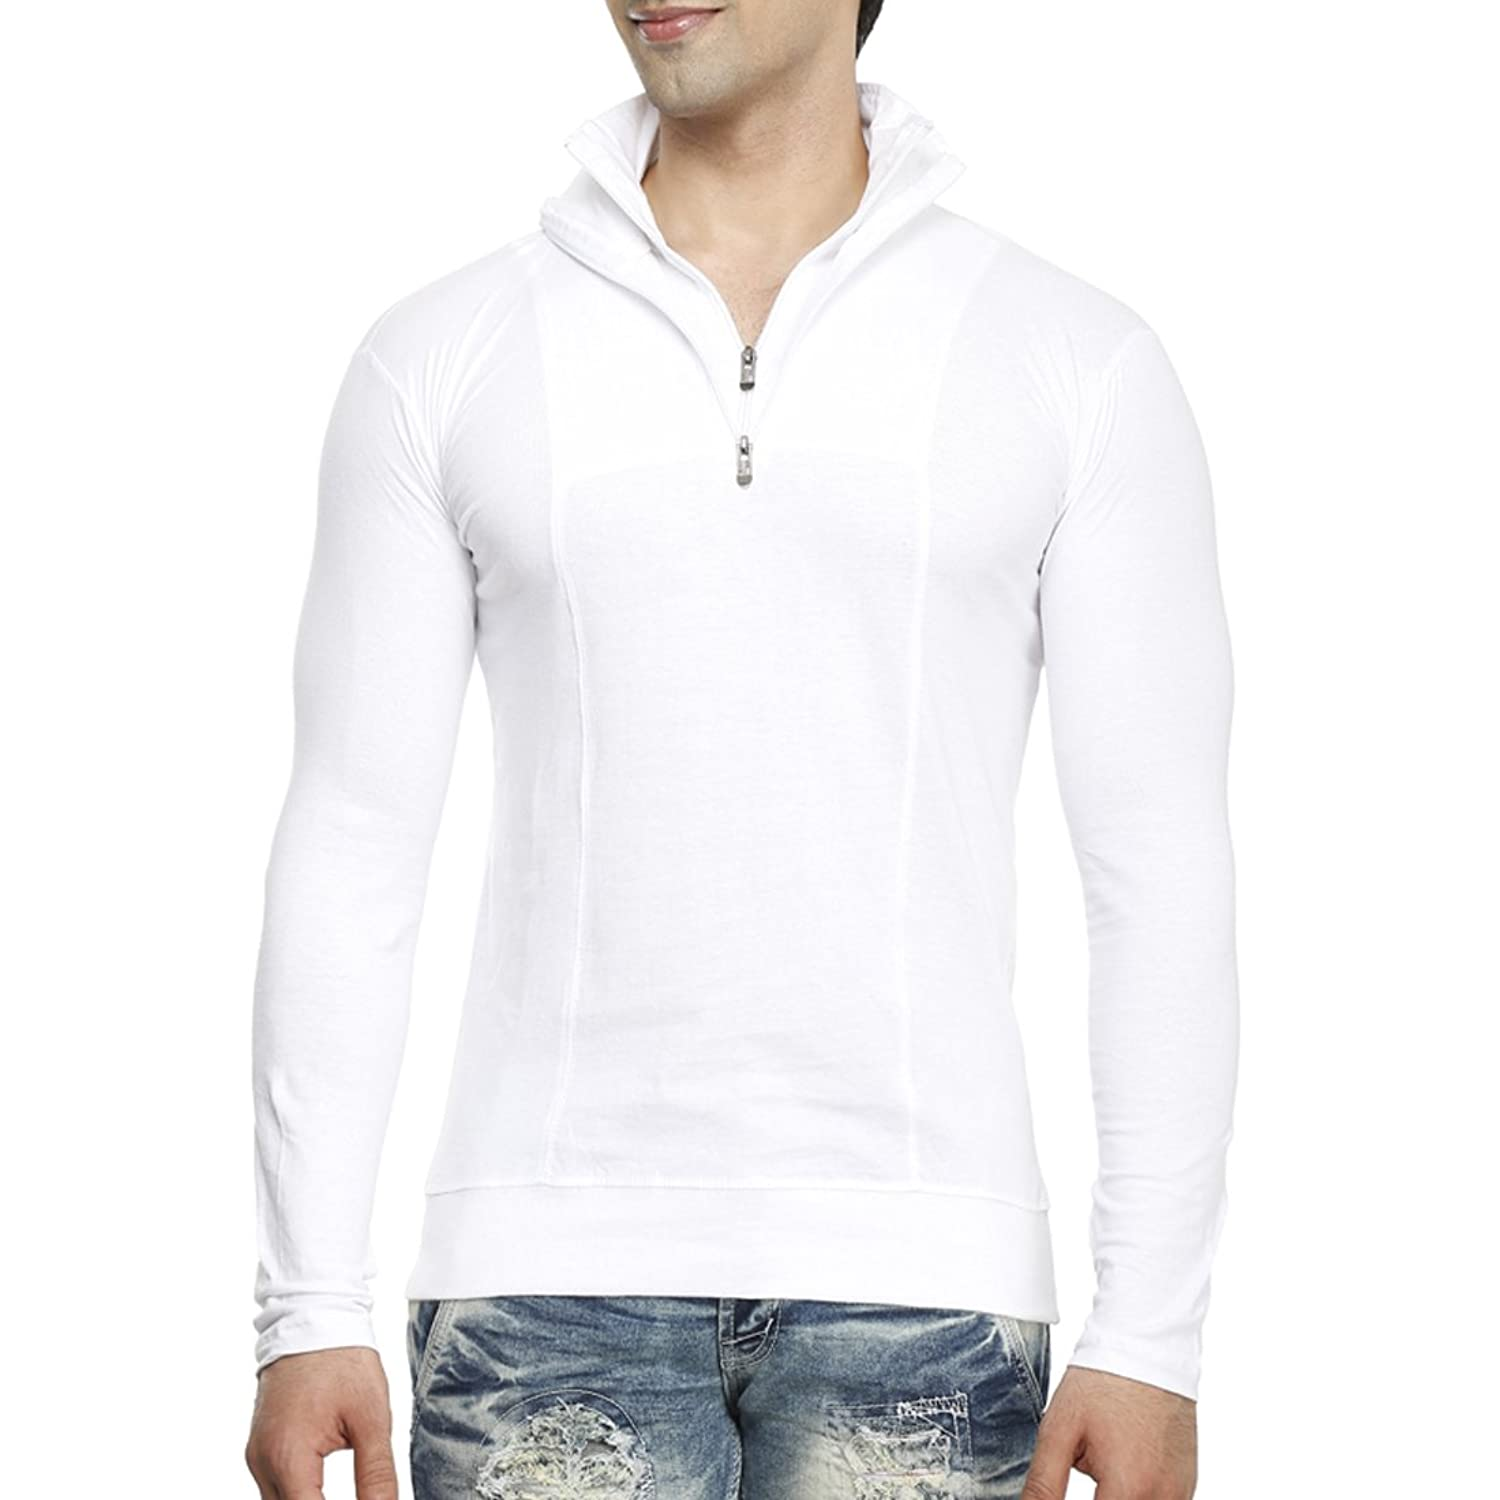 T shirt white colour - Tees Collection Men S Half Zip Double Flap Collar Full Sleeve Cotton T Shirt Amazon In Clothing Accessories